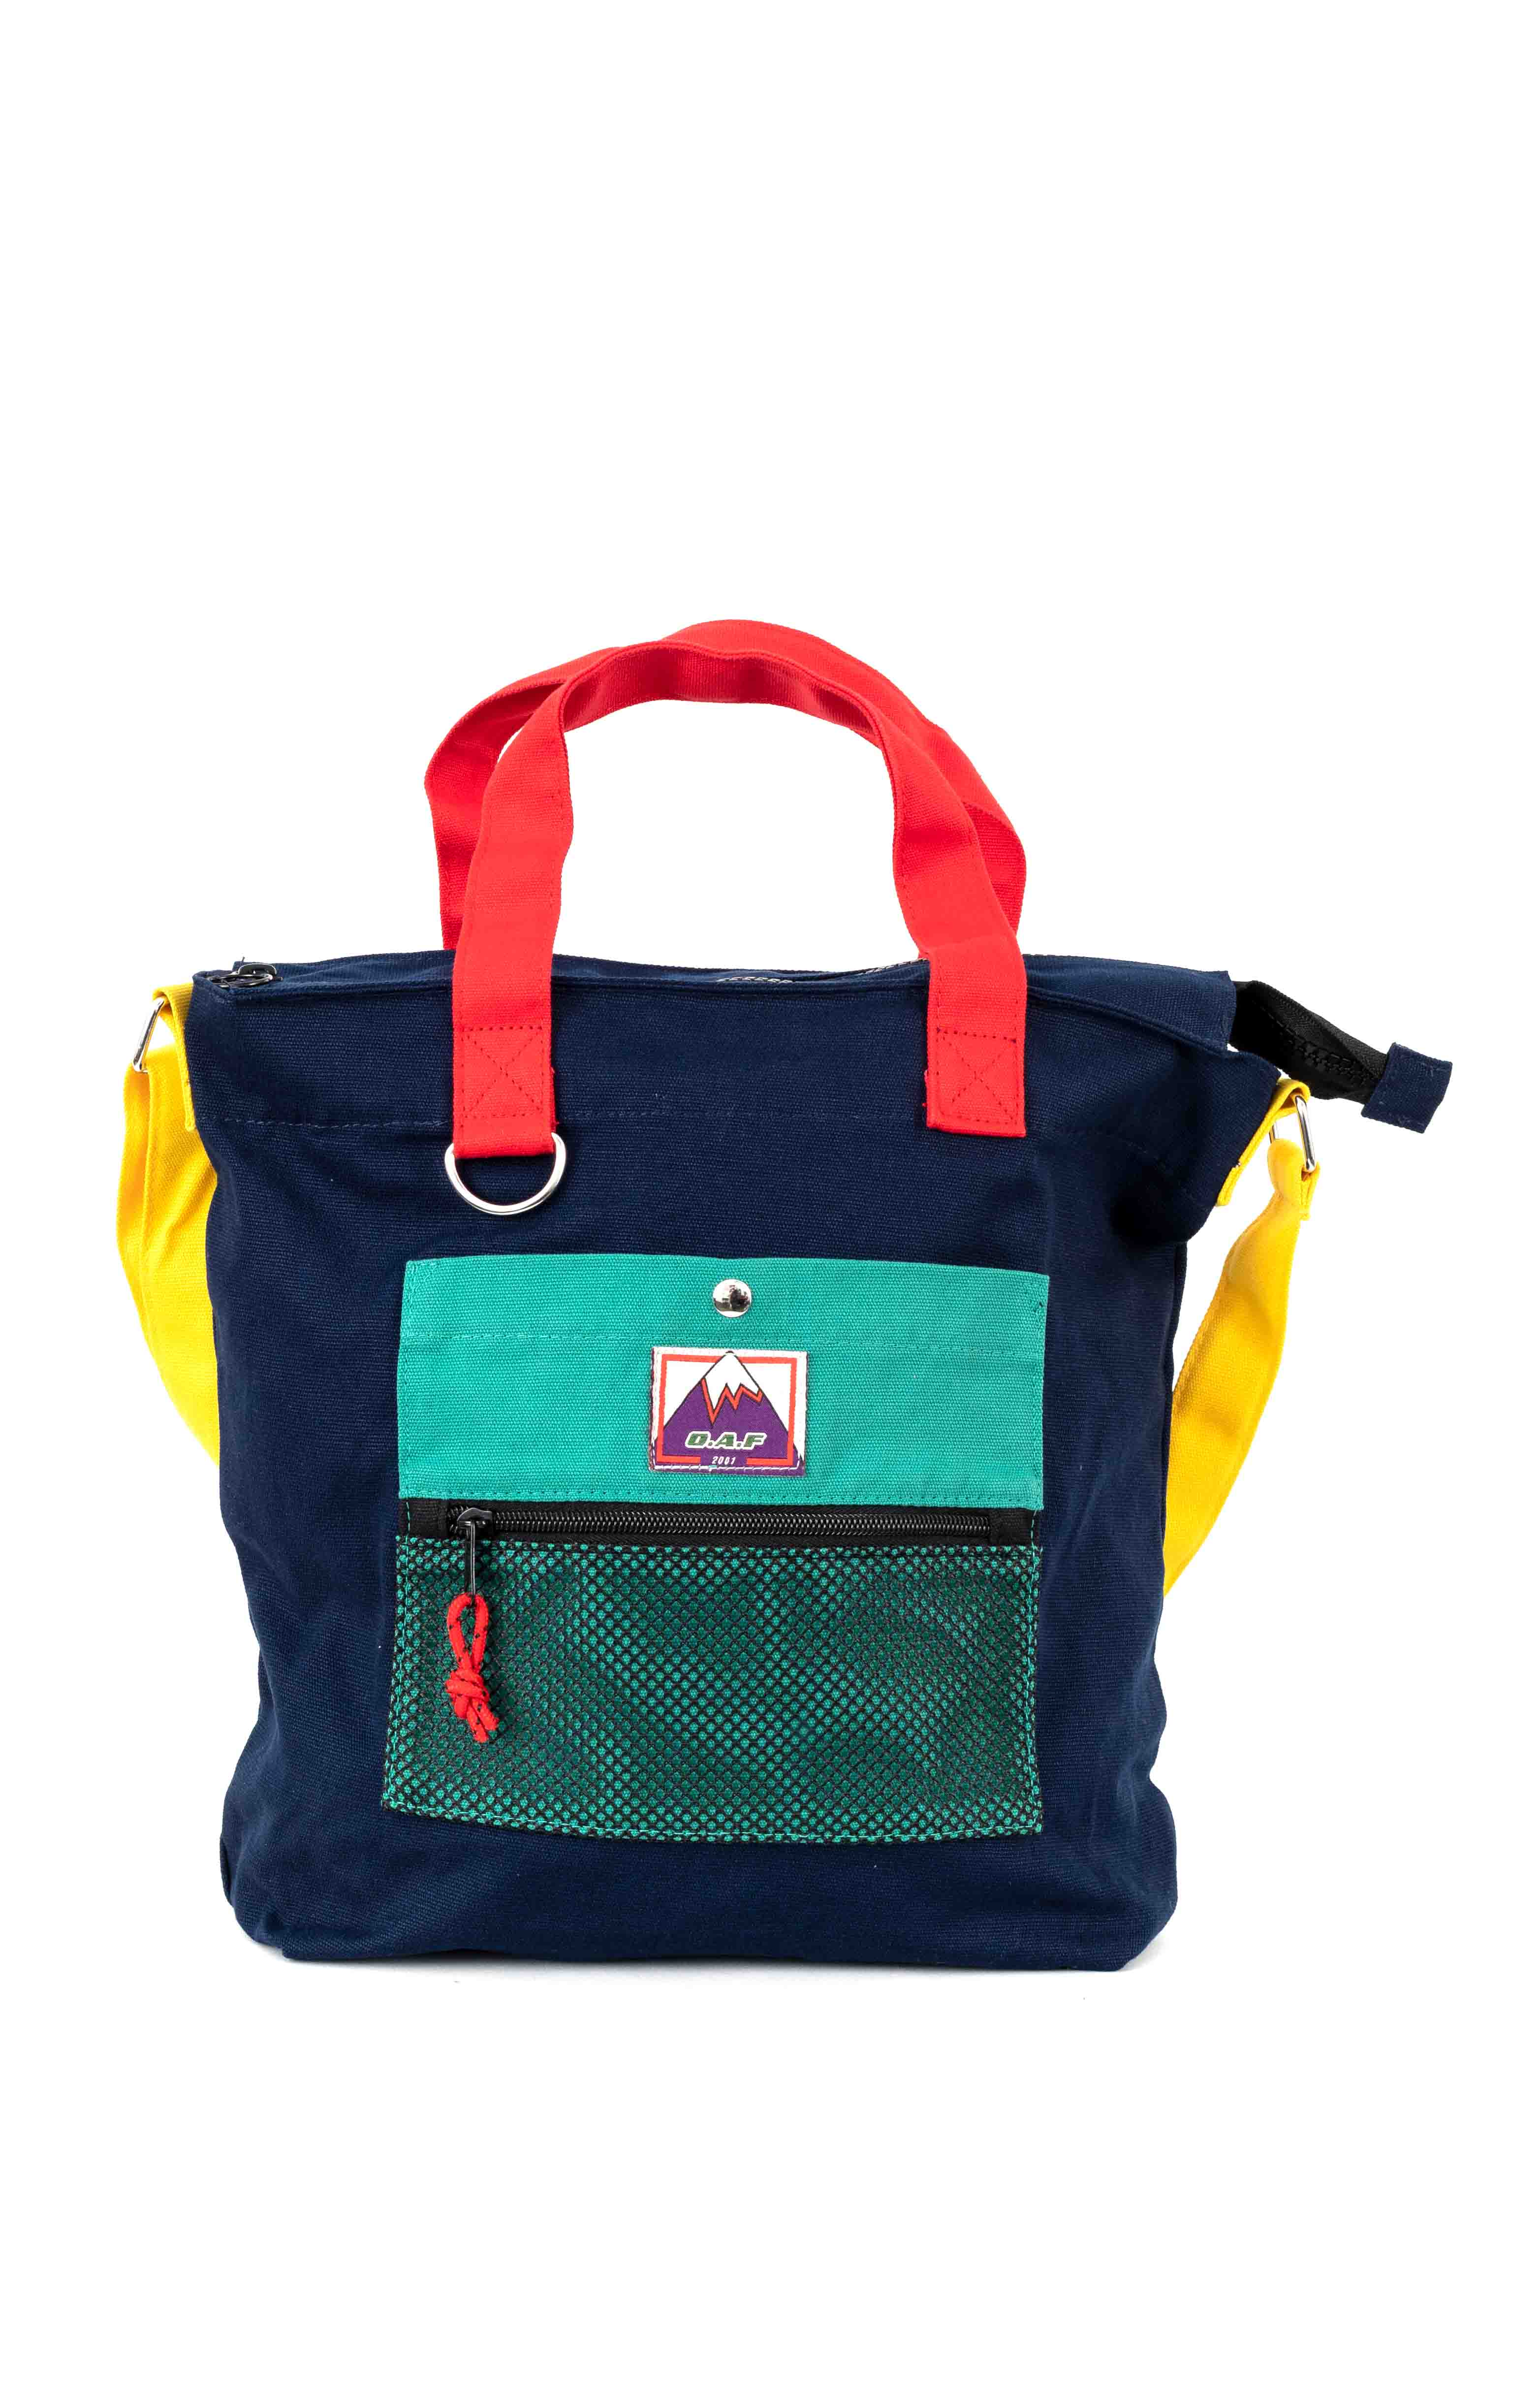 Primary Mountain Tote Bag